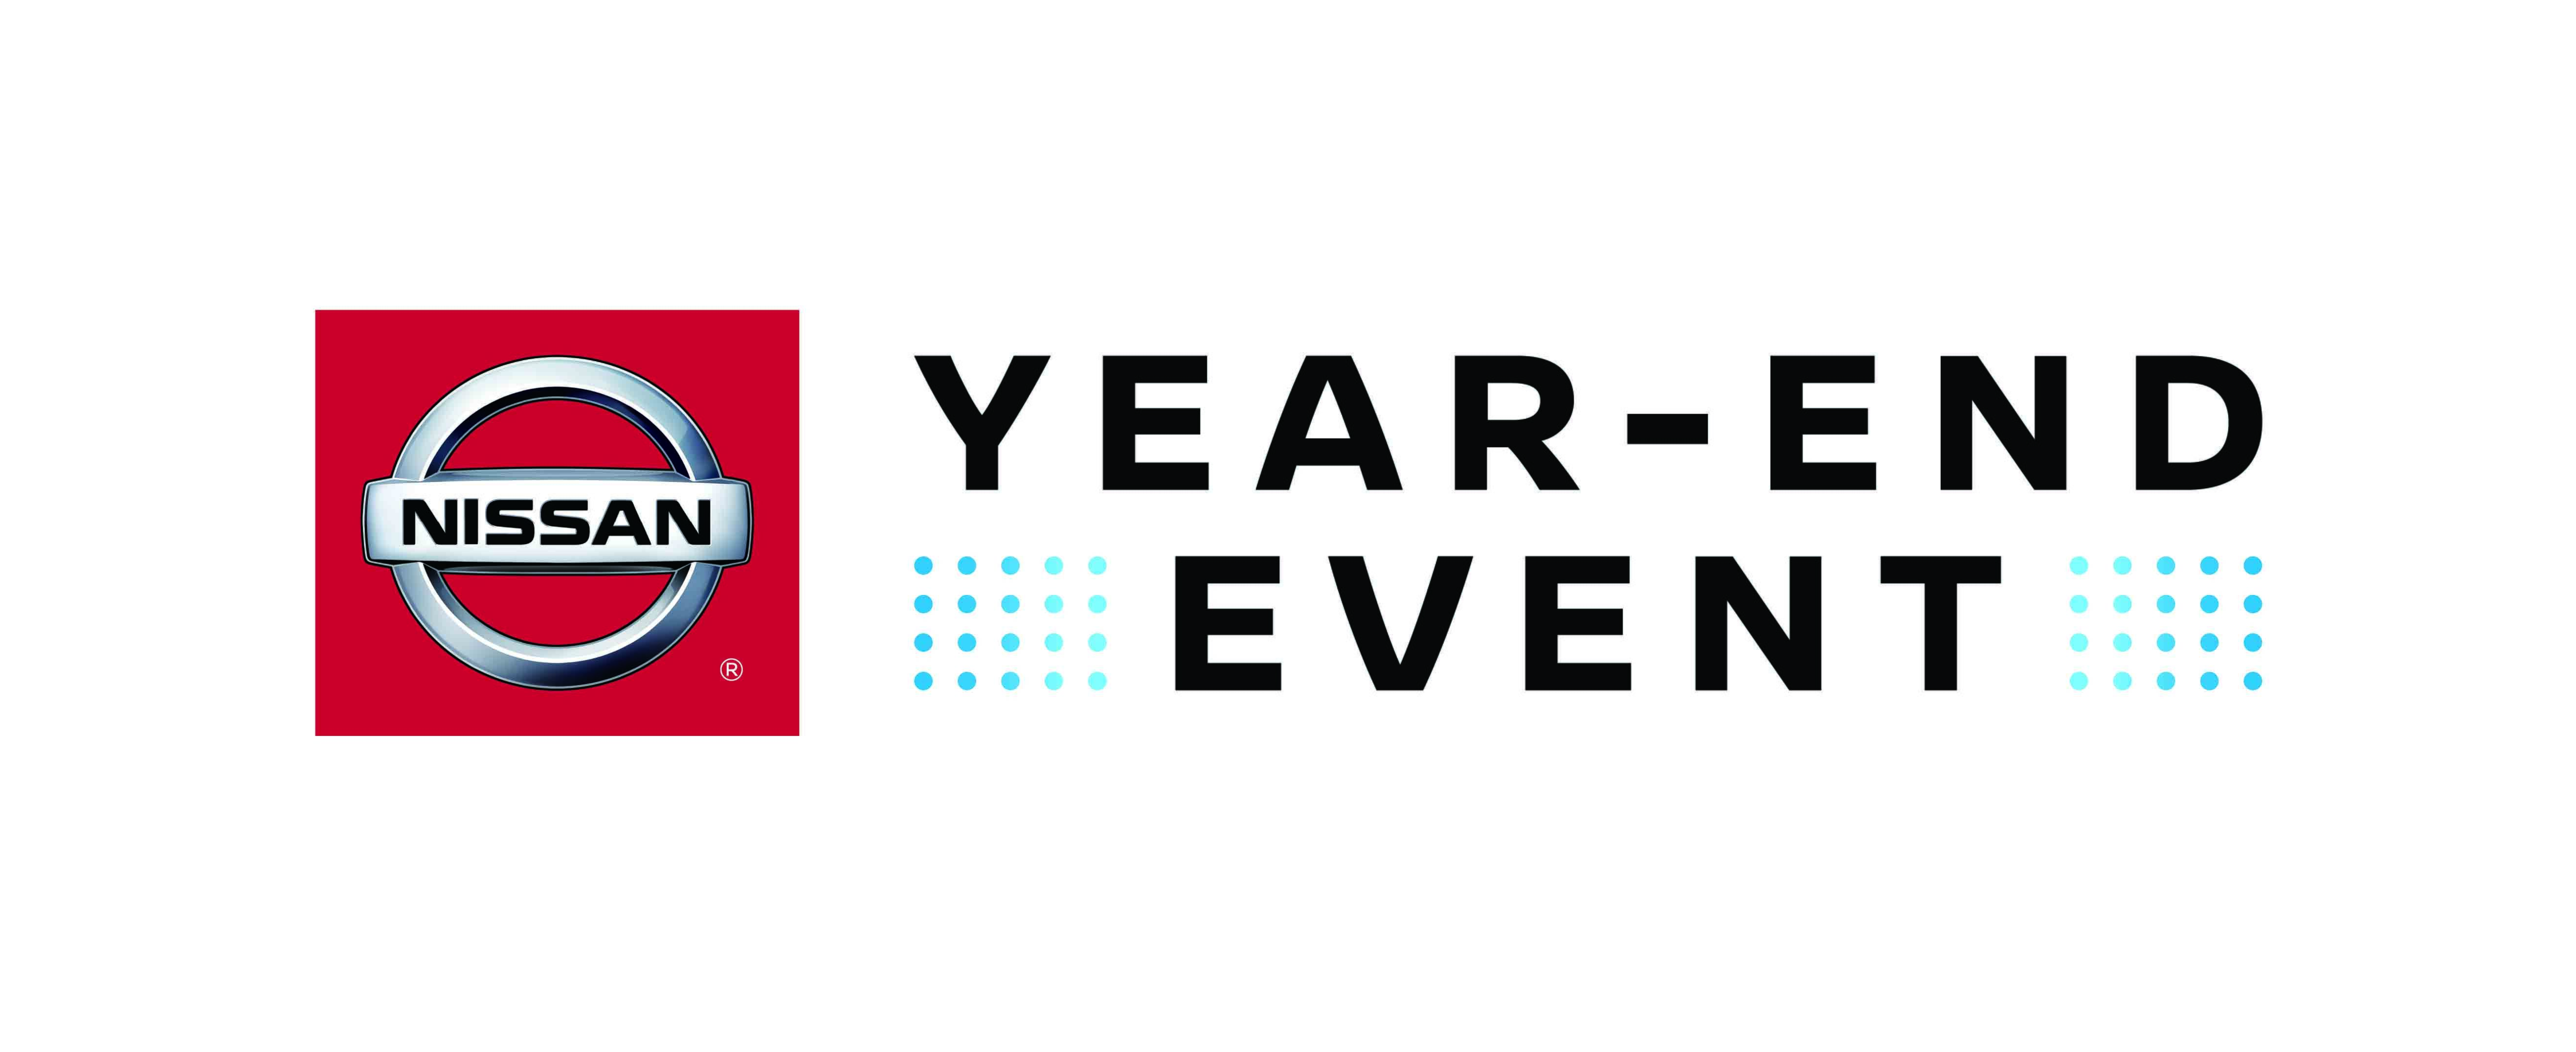 Nissan Year End Event 2018